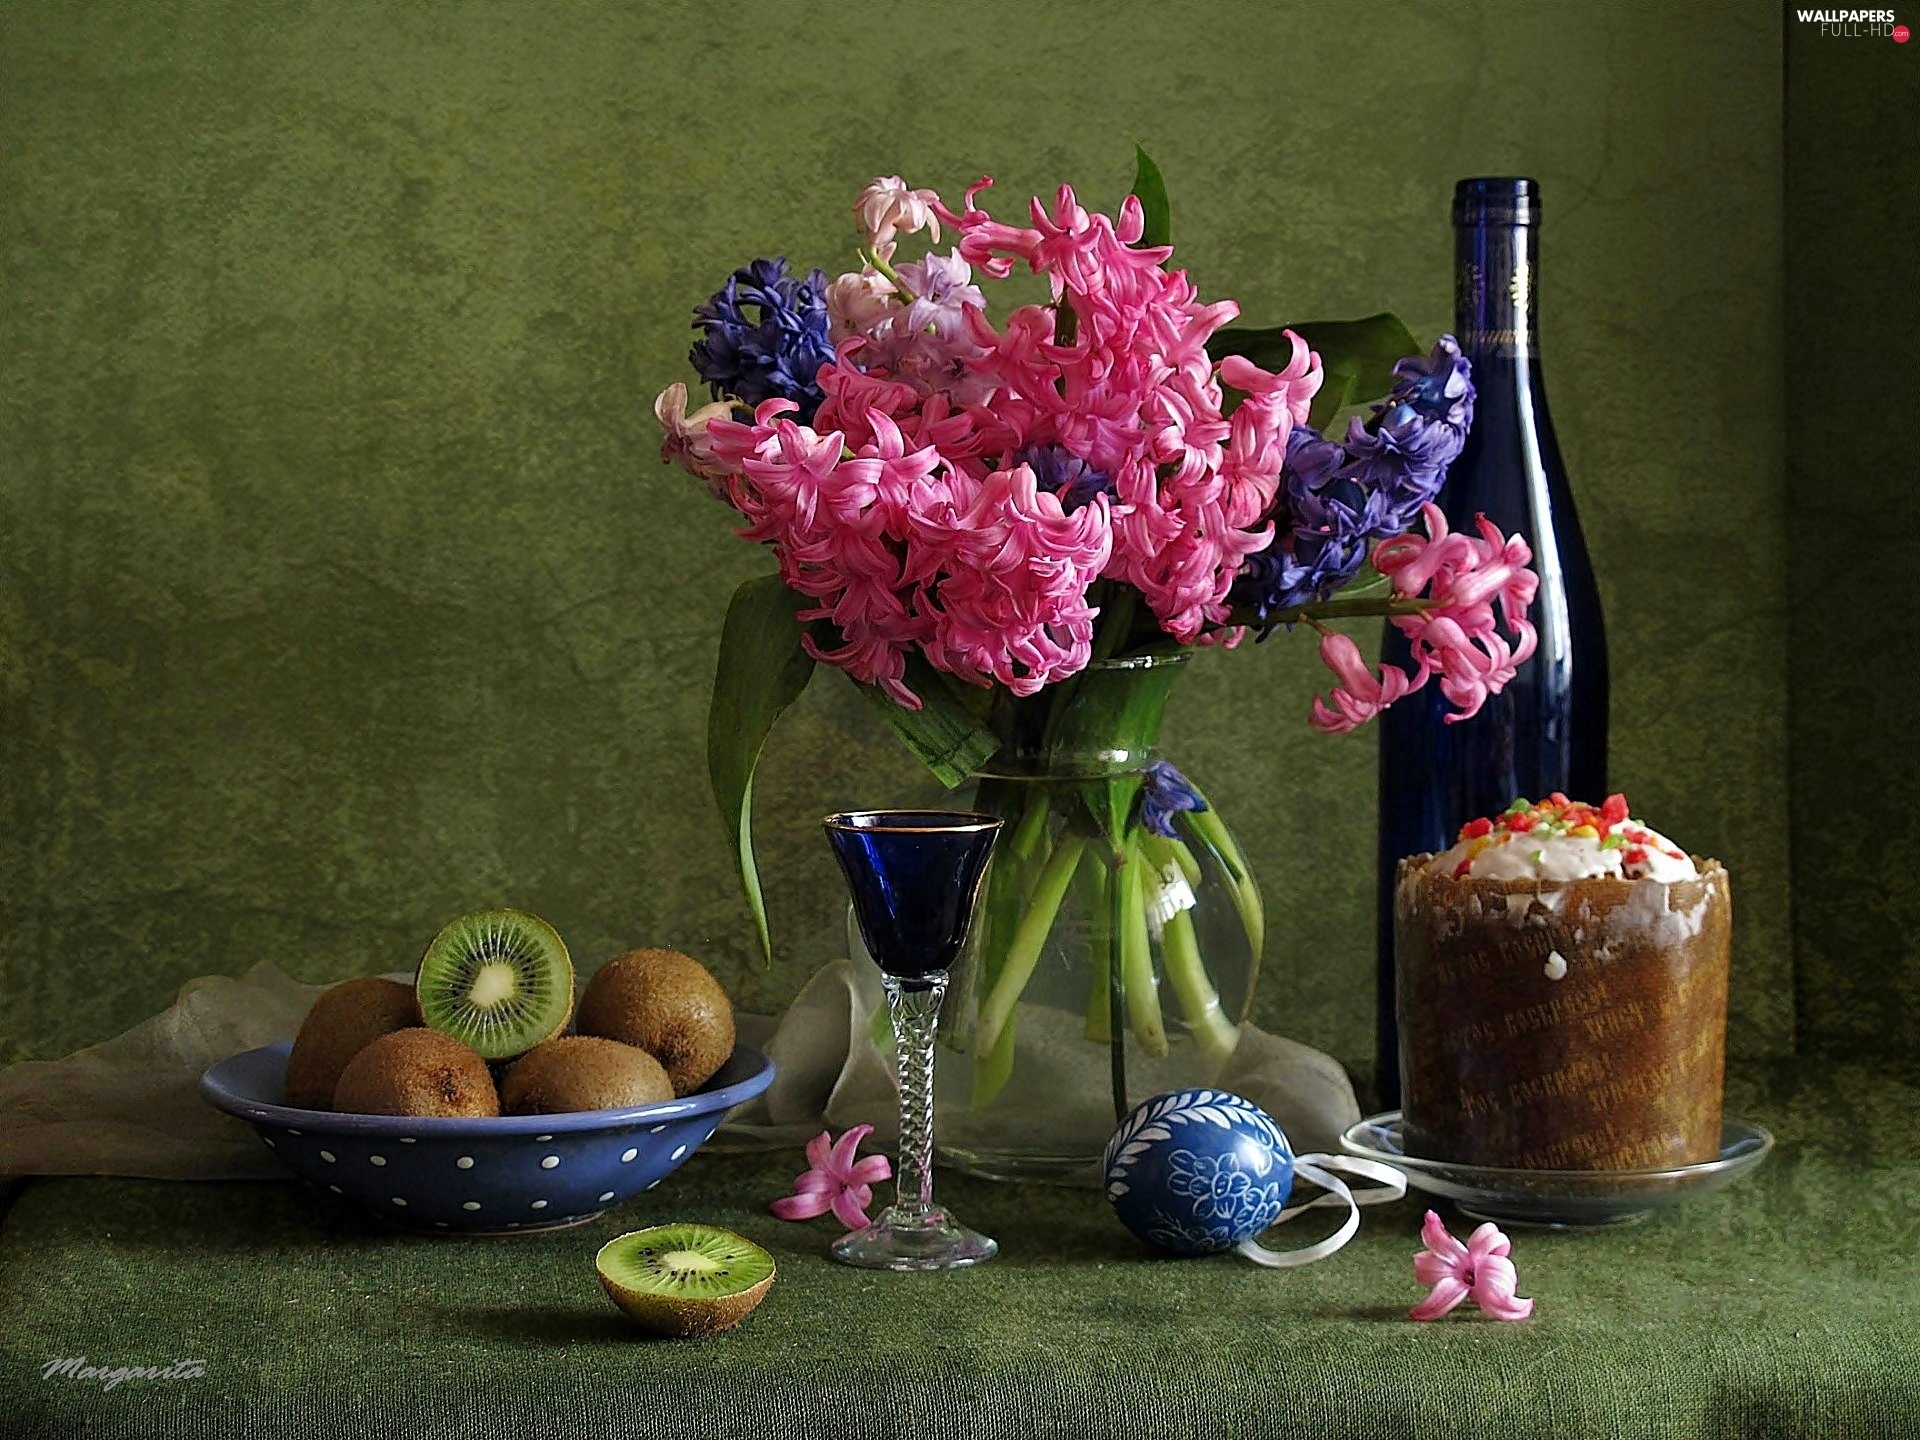 Easter egg, kiwi, Wine, bouquet, cake, hyacinths, Red